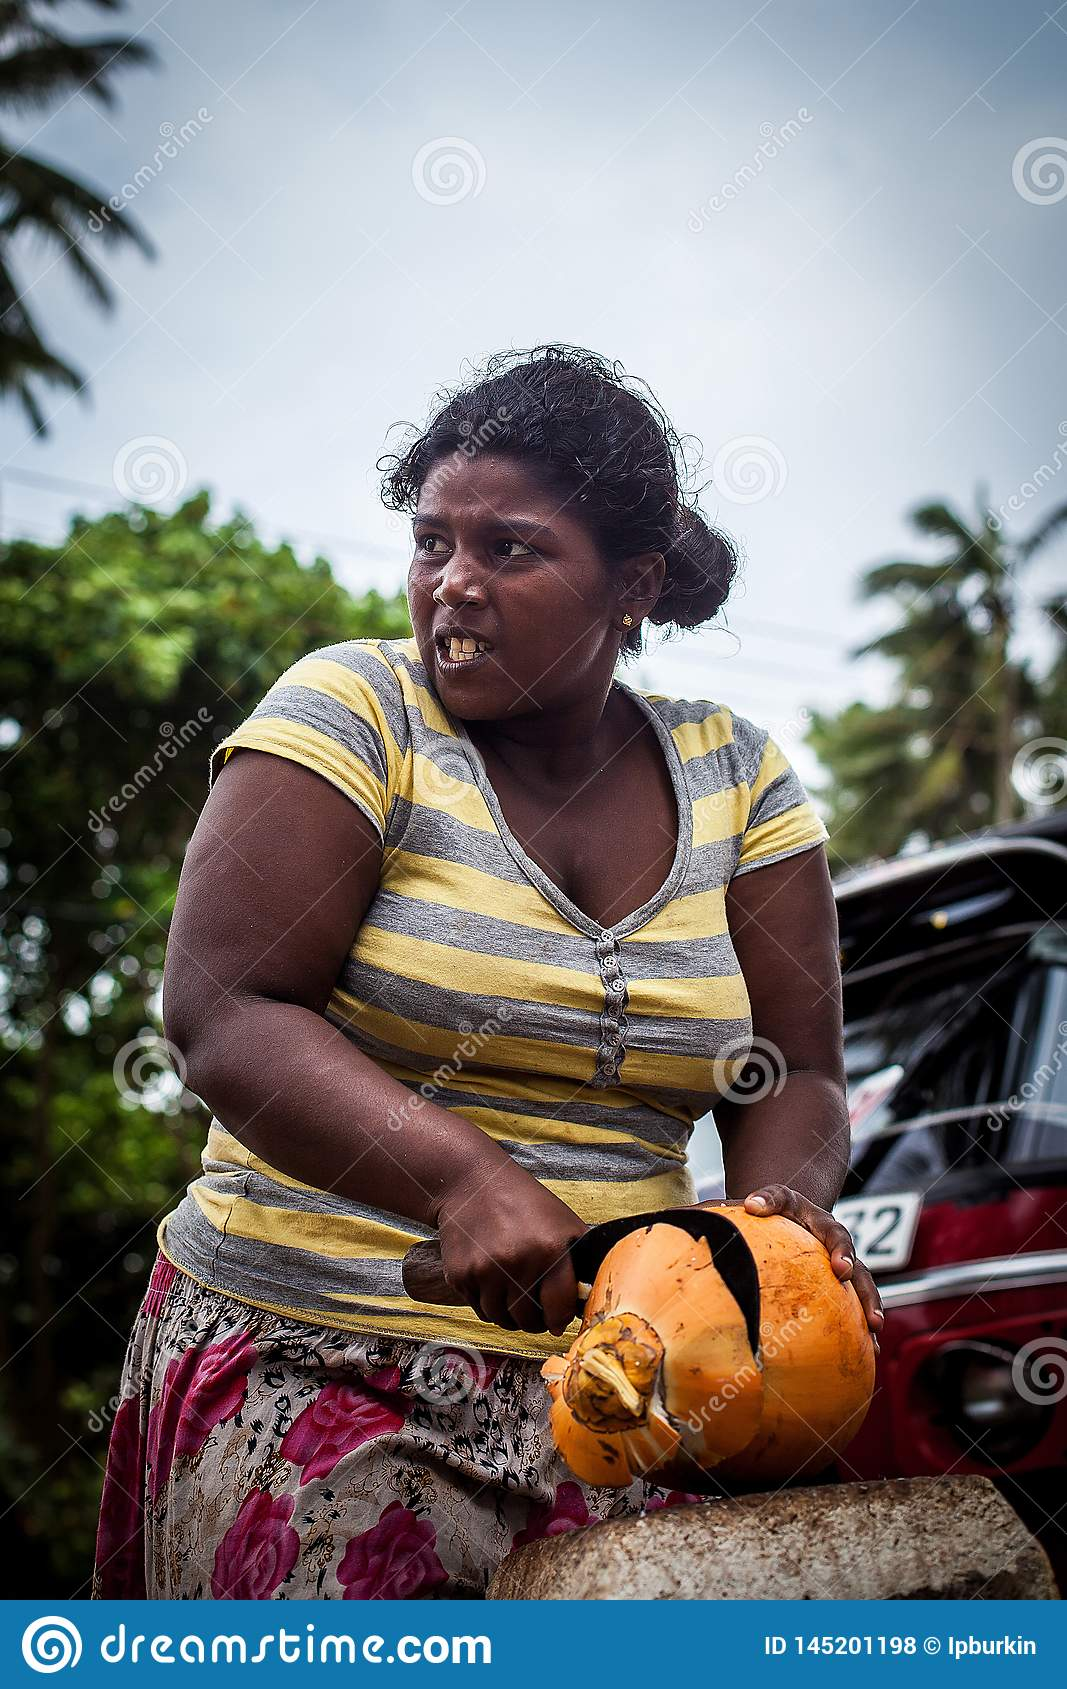 A dark-skinned woman cuts an orange coconut with a big knife. Working hard women. Strong and worthy woman doing hard job